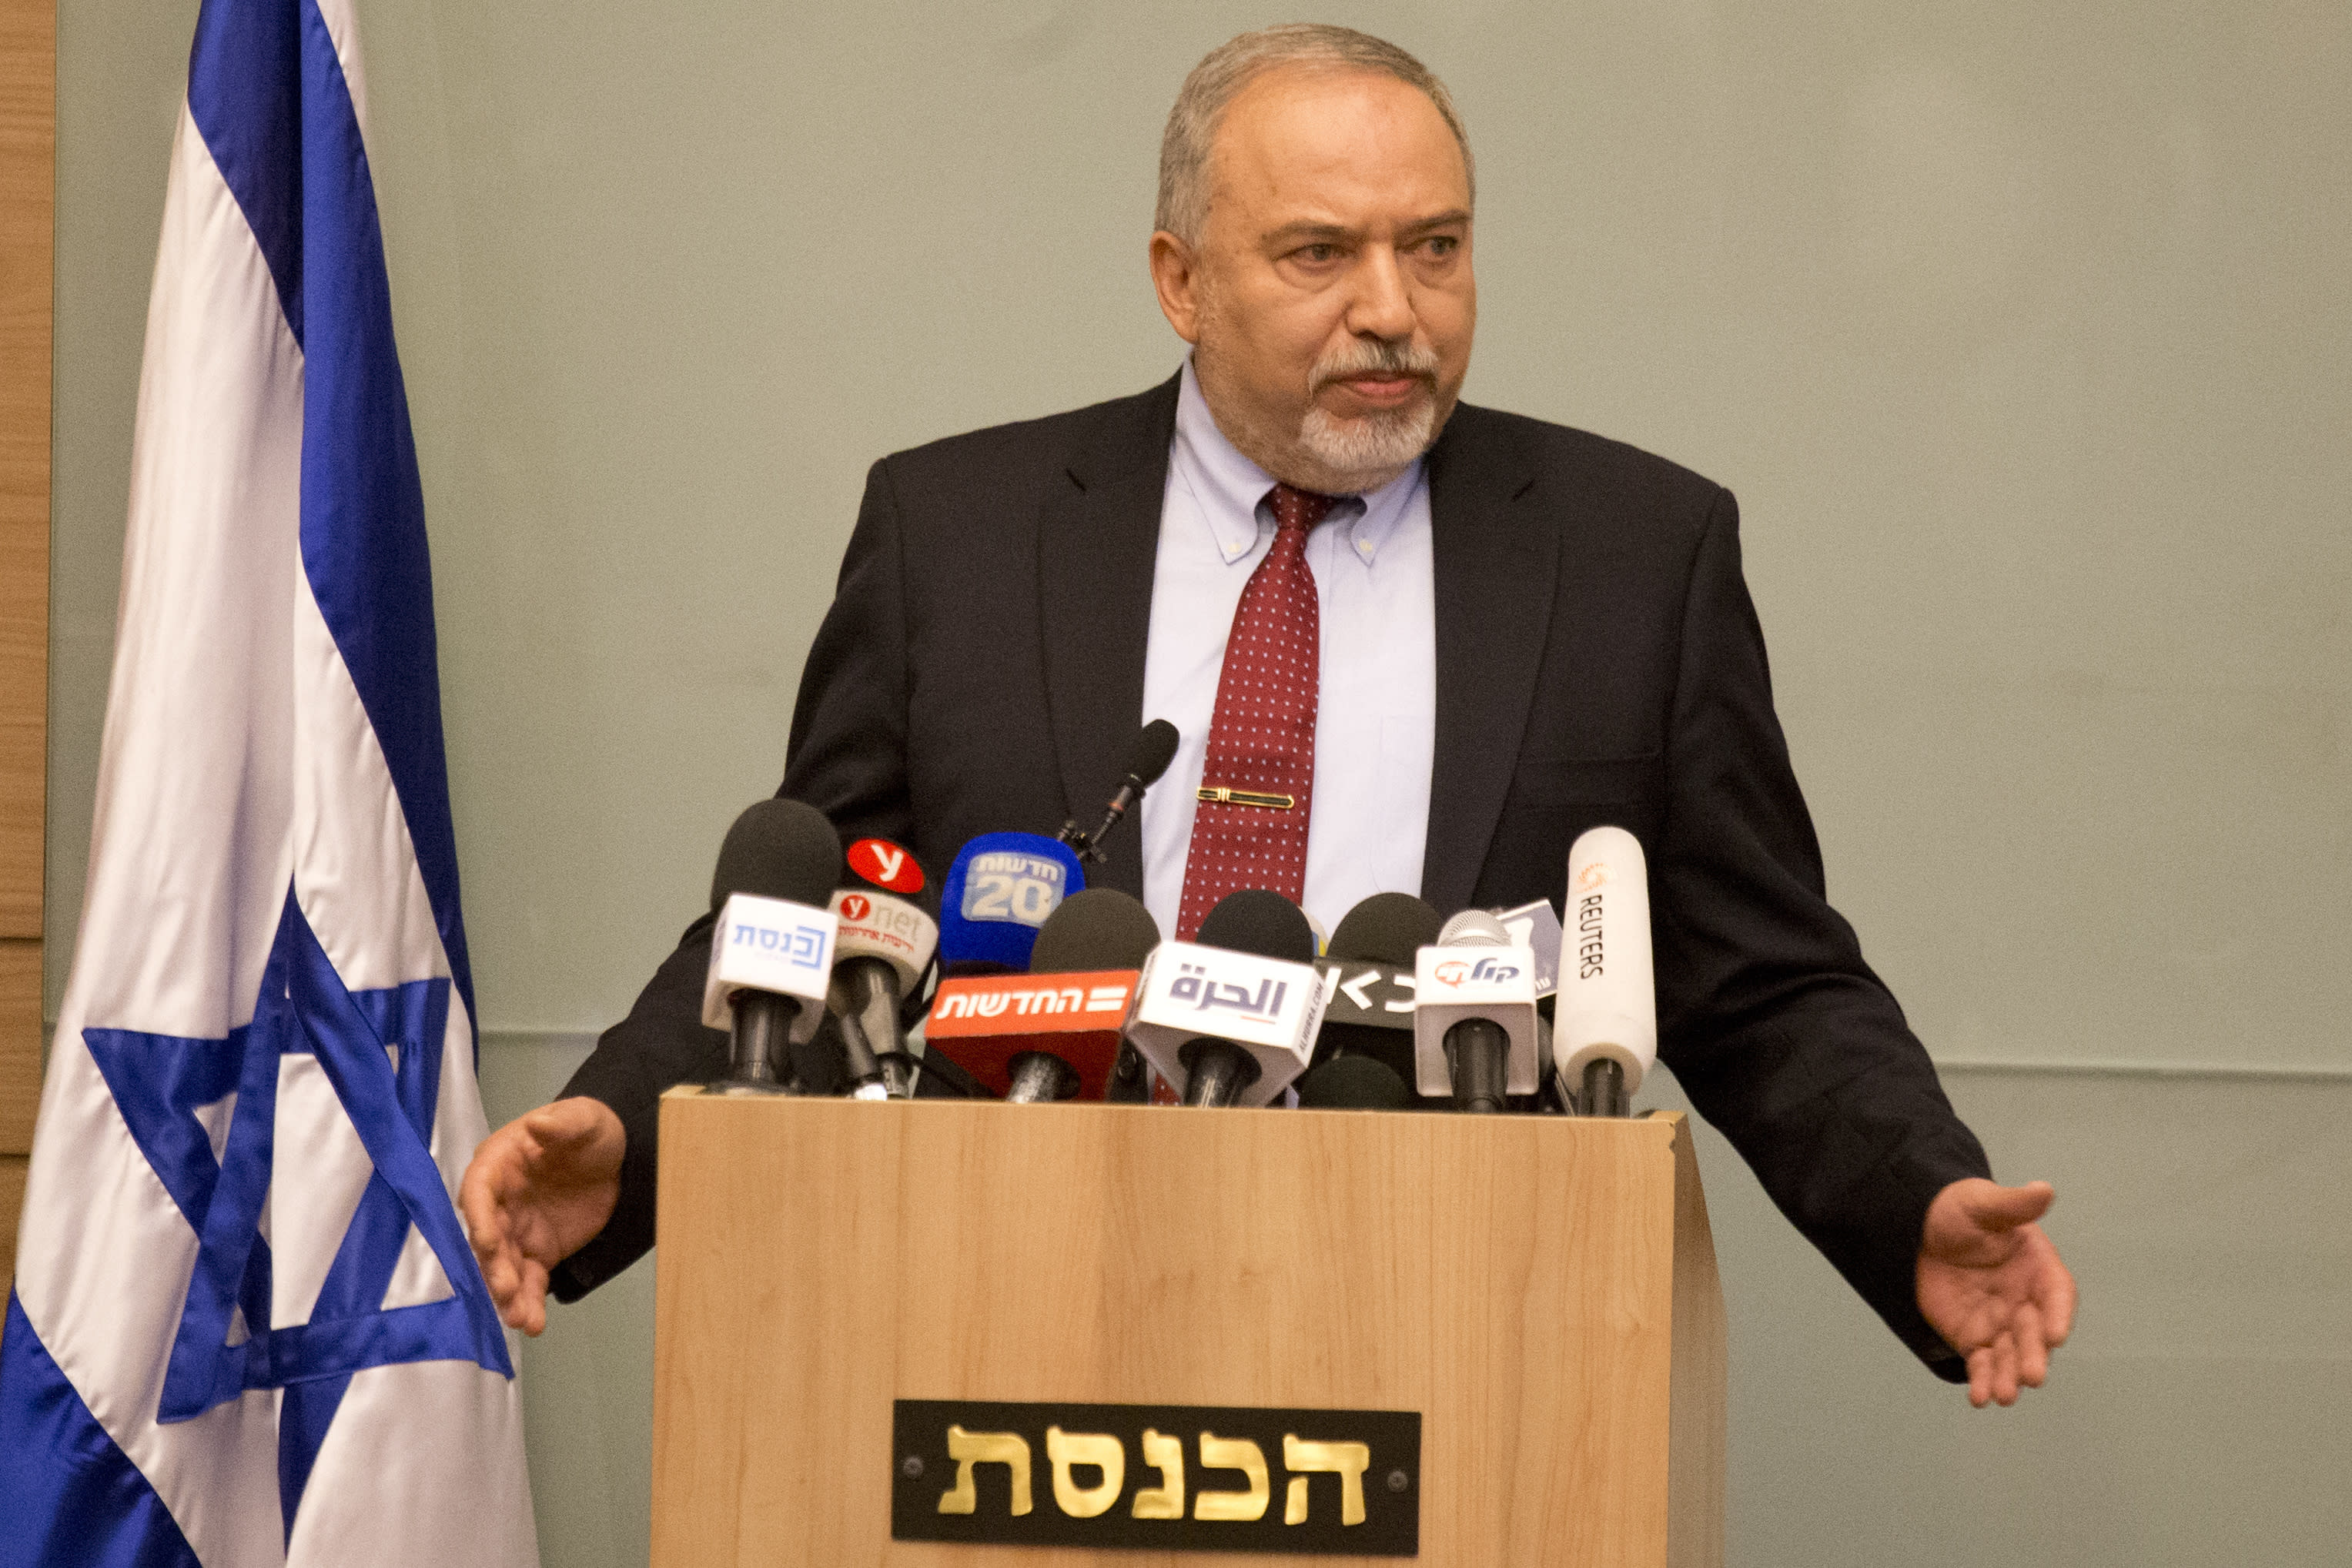 Israeli Defense Minister Avigdor Lieberman delivers a statement at the Knesset, Israel's Parliament, in Jerusalem, Wednesday, Nov. 14, 2018. Lieberman announced his resignation Wednesday over the Gaza cease-fire, making early elections likely. (AP Photo/Ariel Schalit)